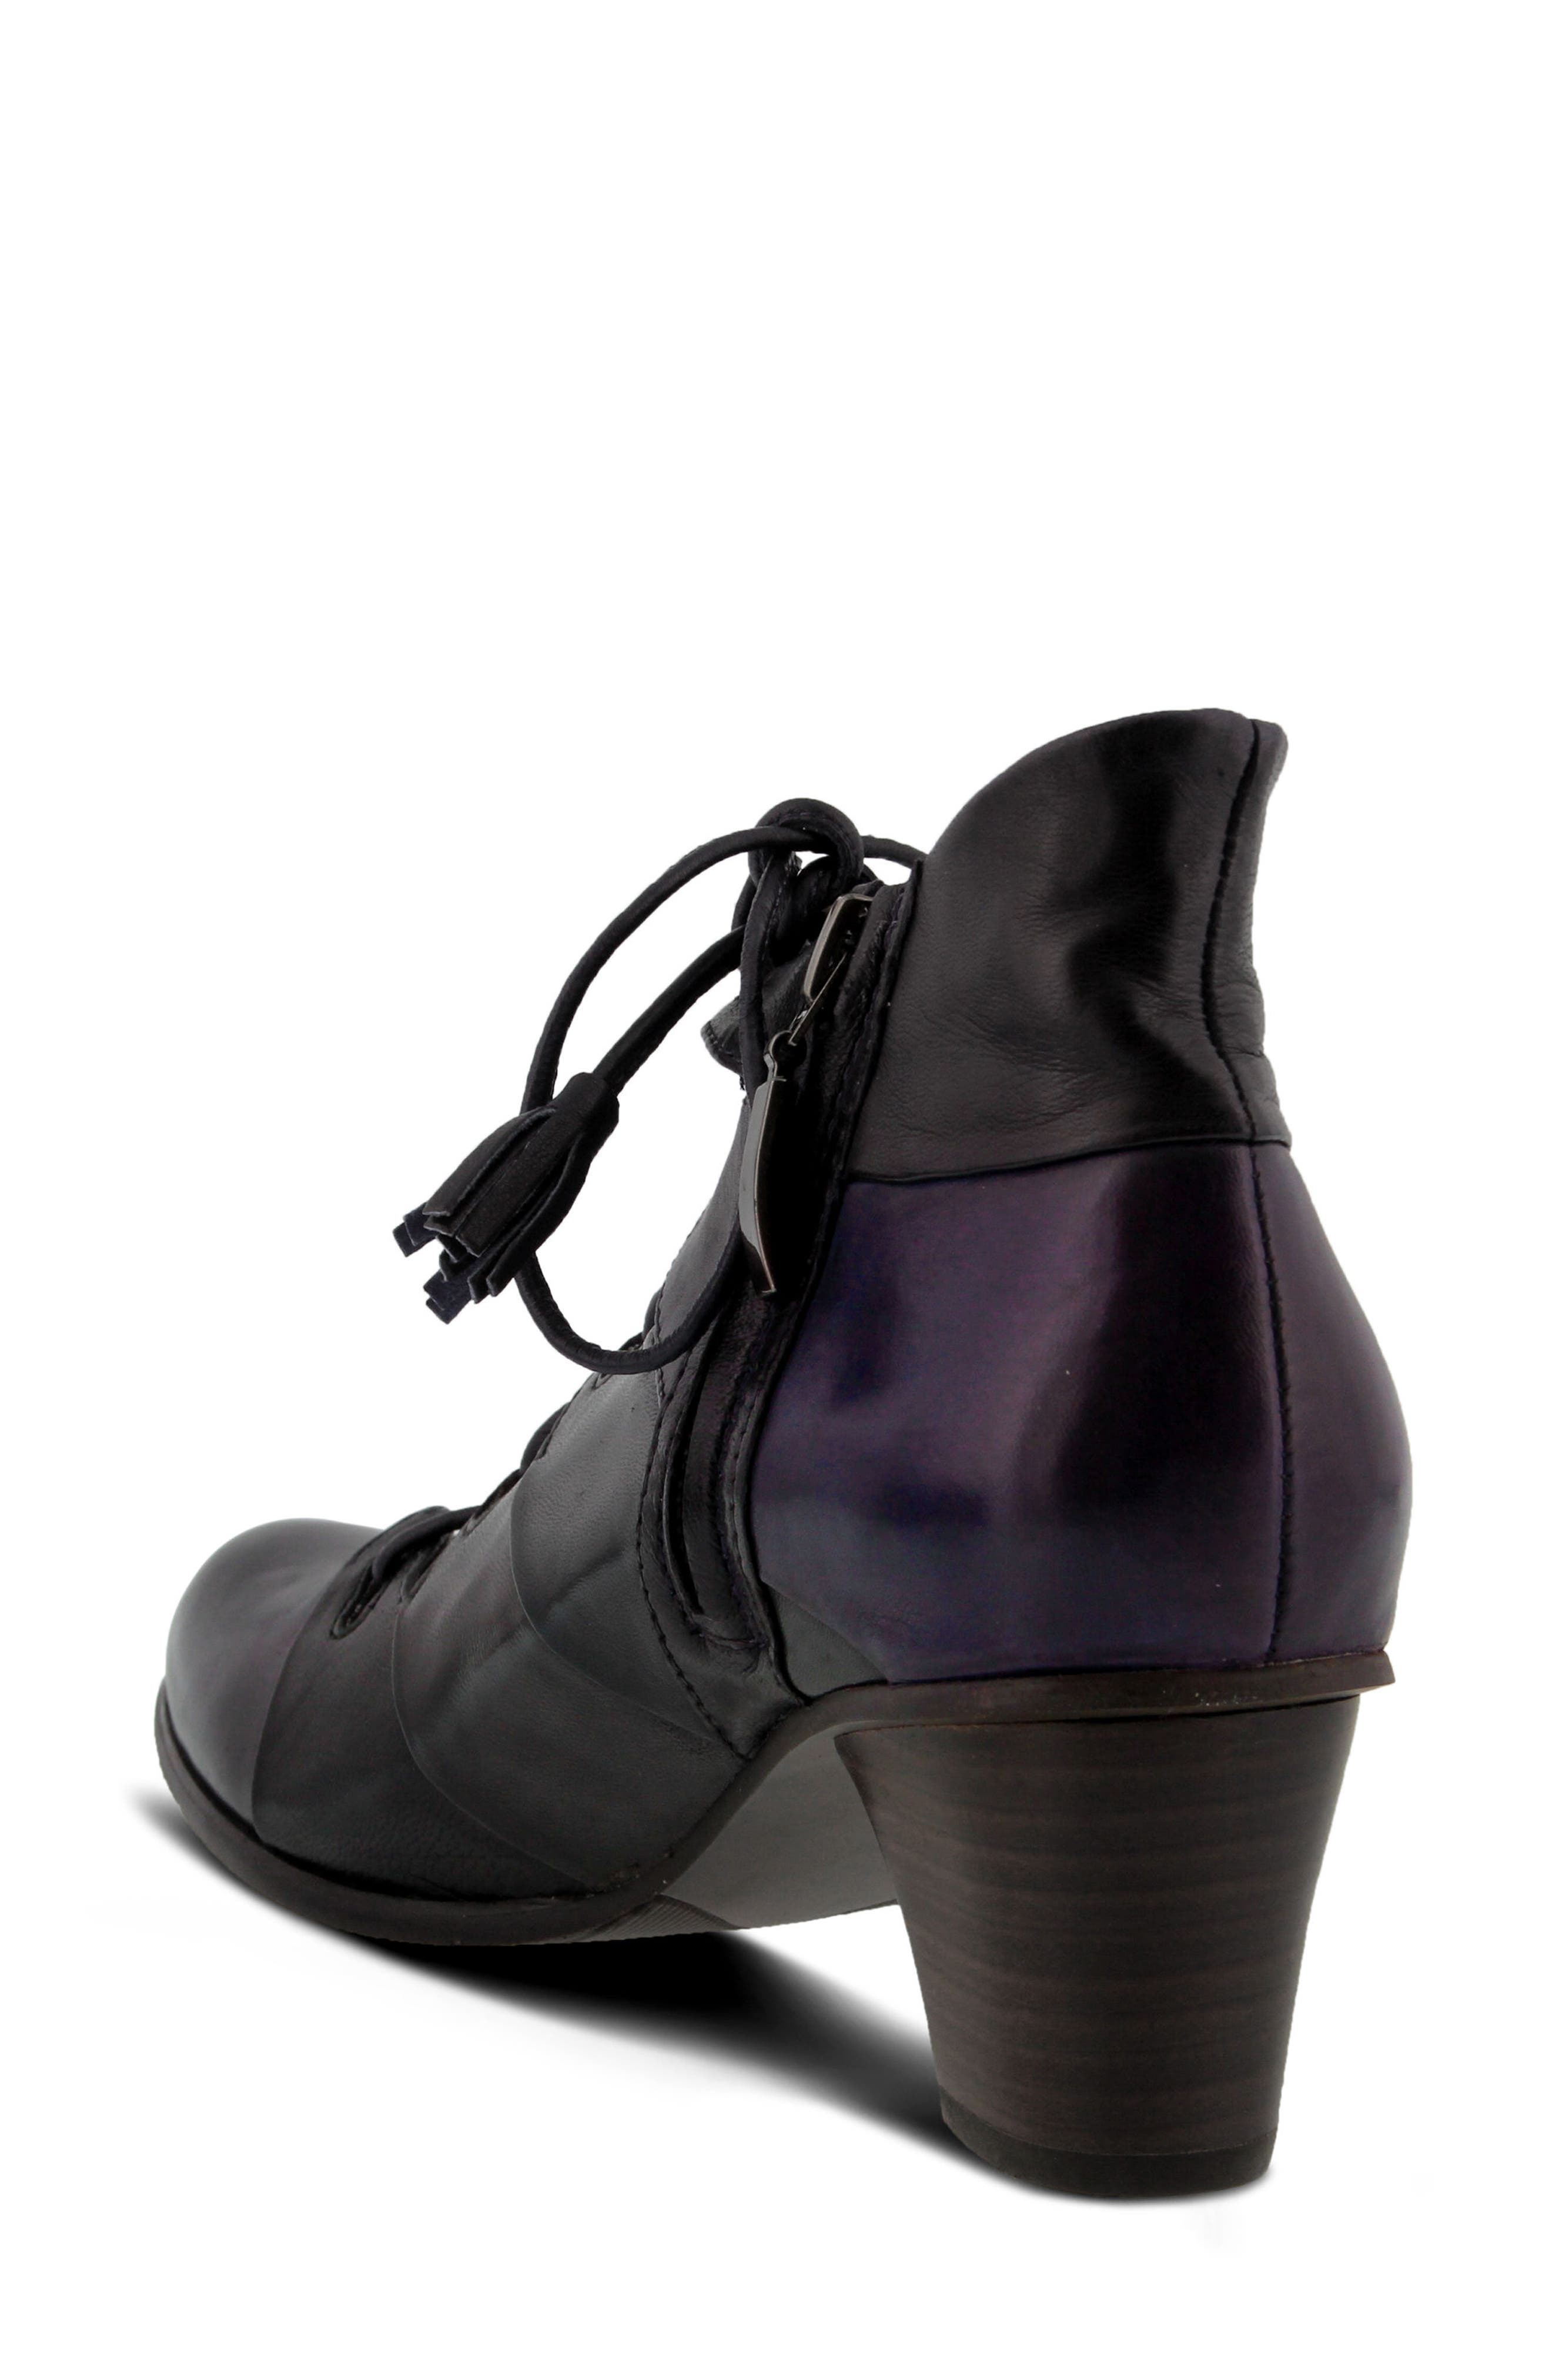 Estrela Ghillie Bootie,                             Alternate thumbnail 2, color,                             PURPLE MULTI LEATHER